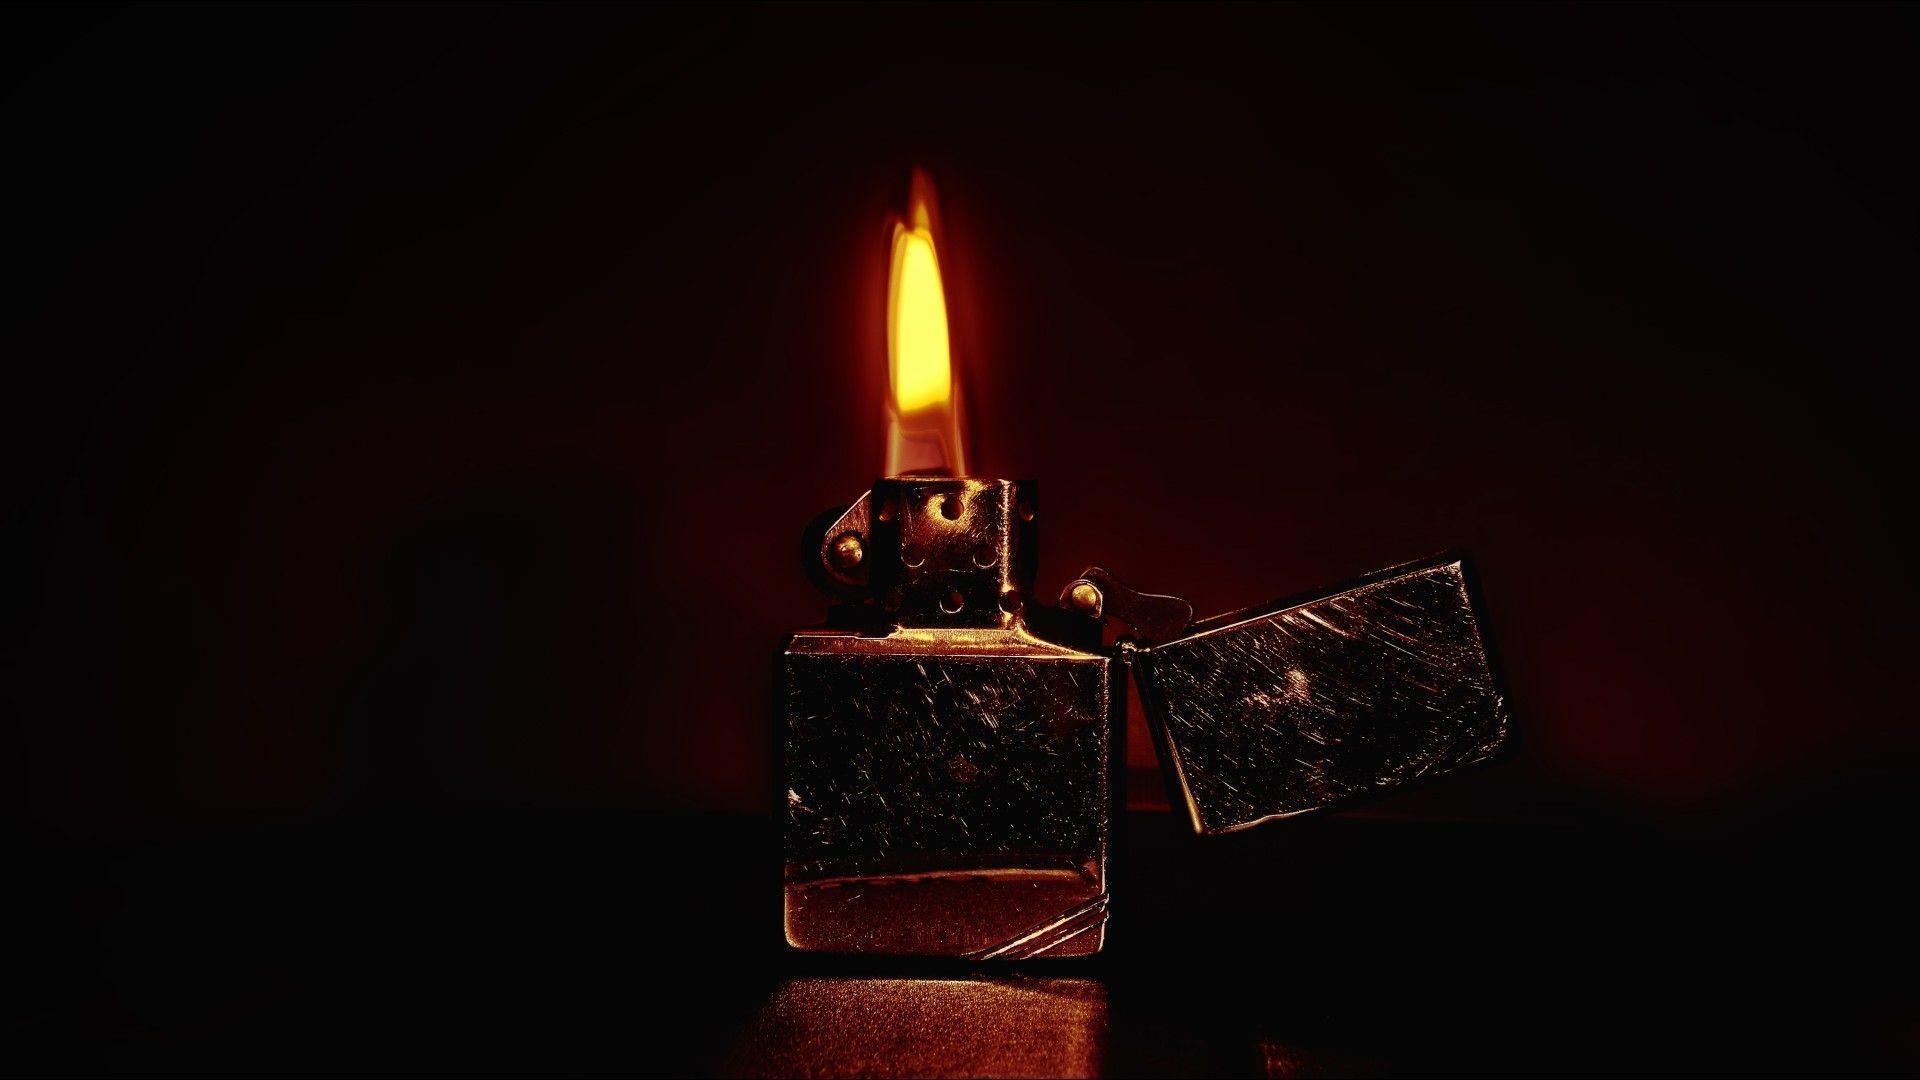 free full hd wallpapers of 2016 zippo lighters wallpaper